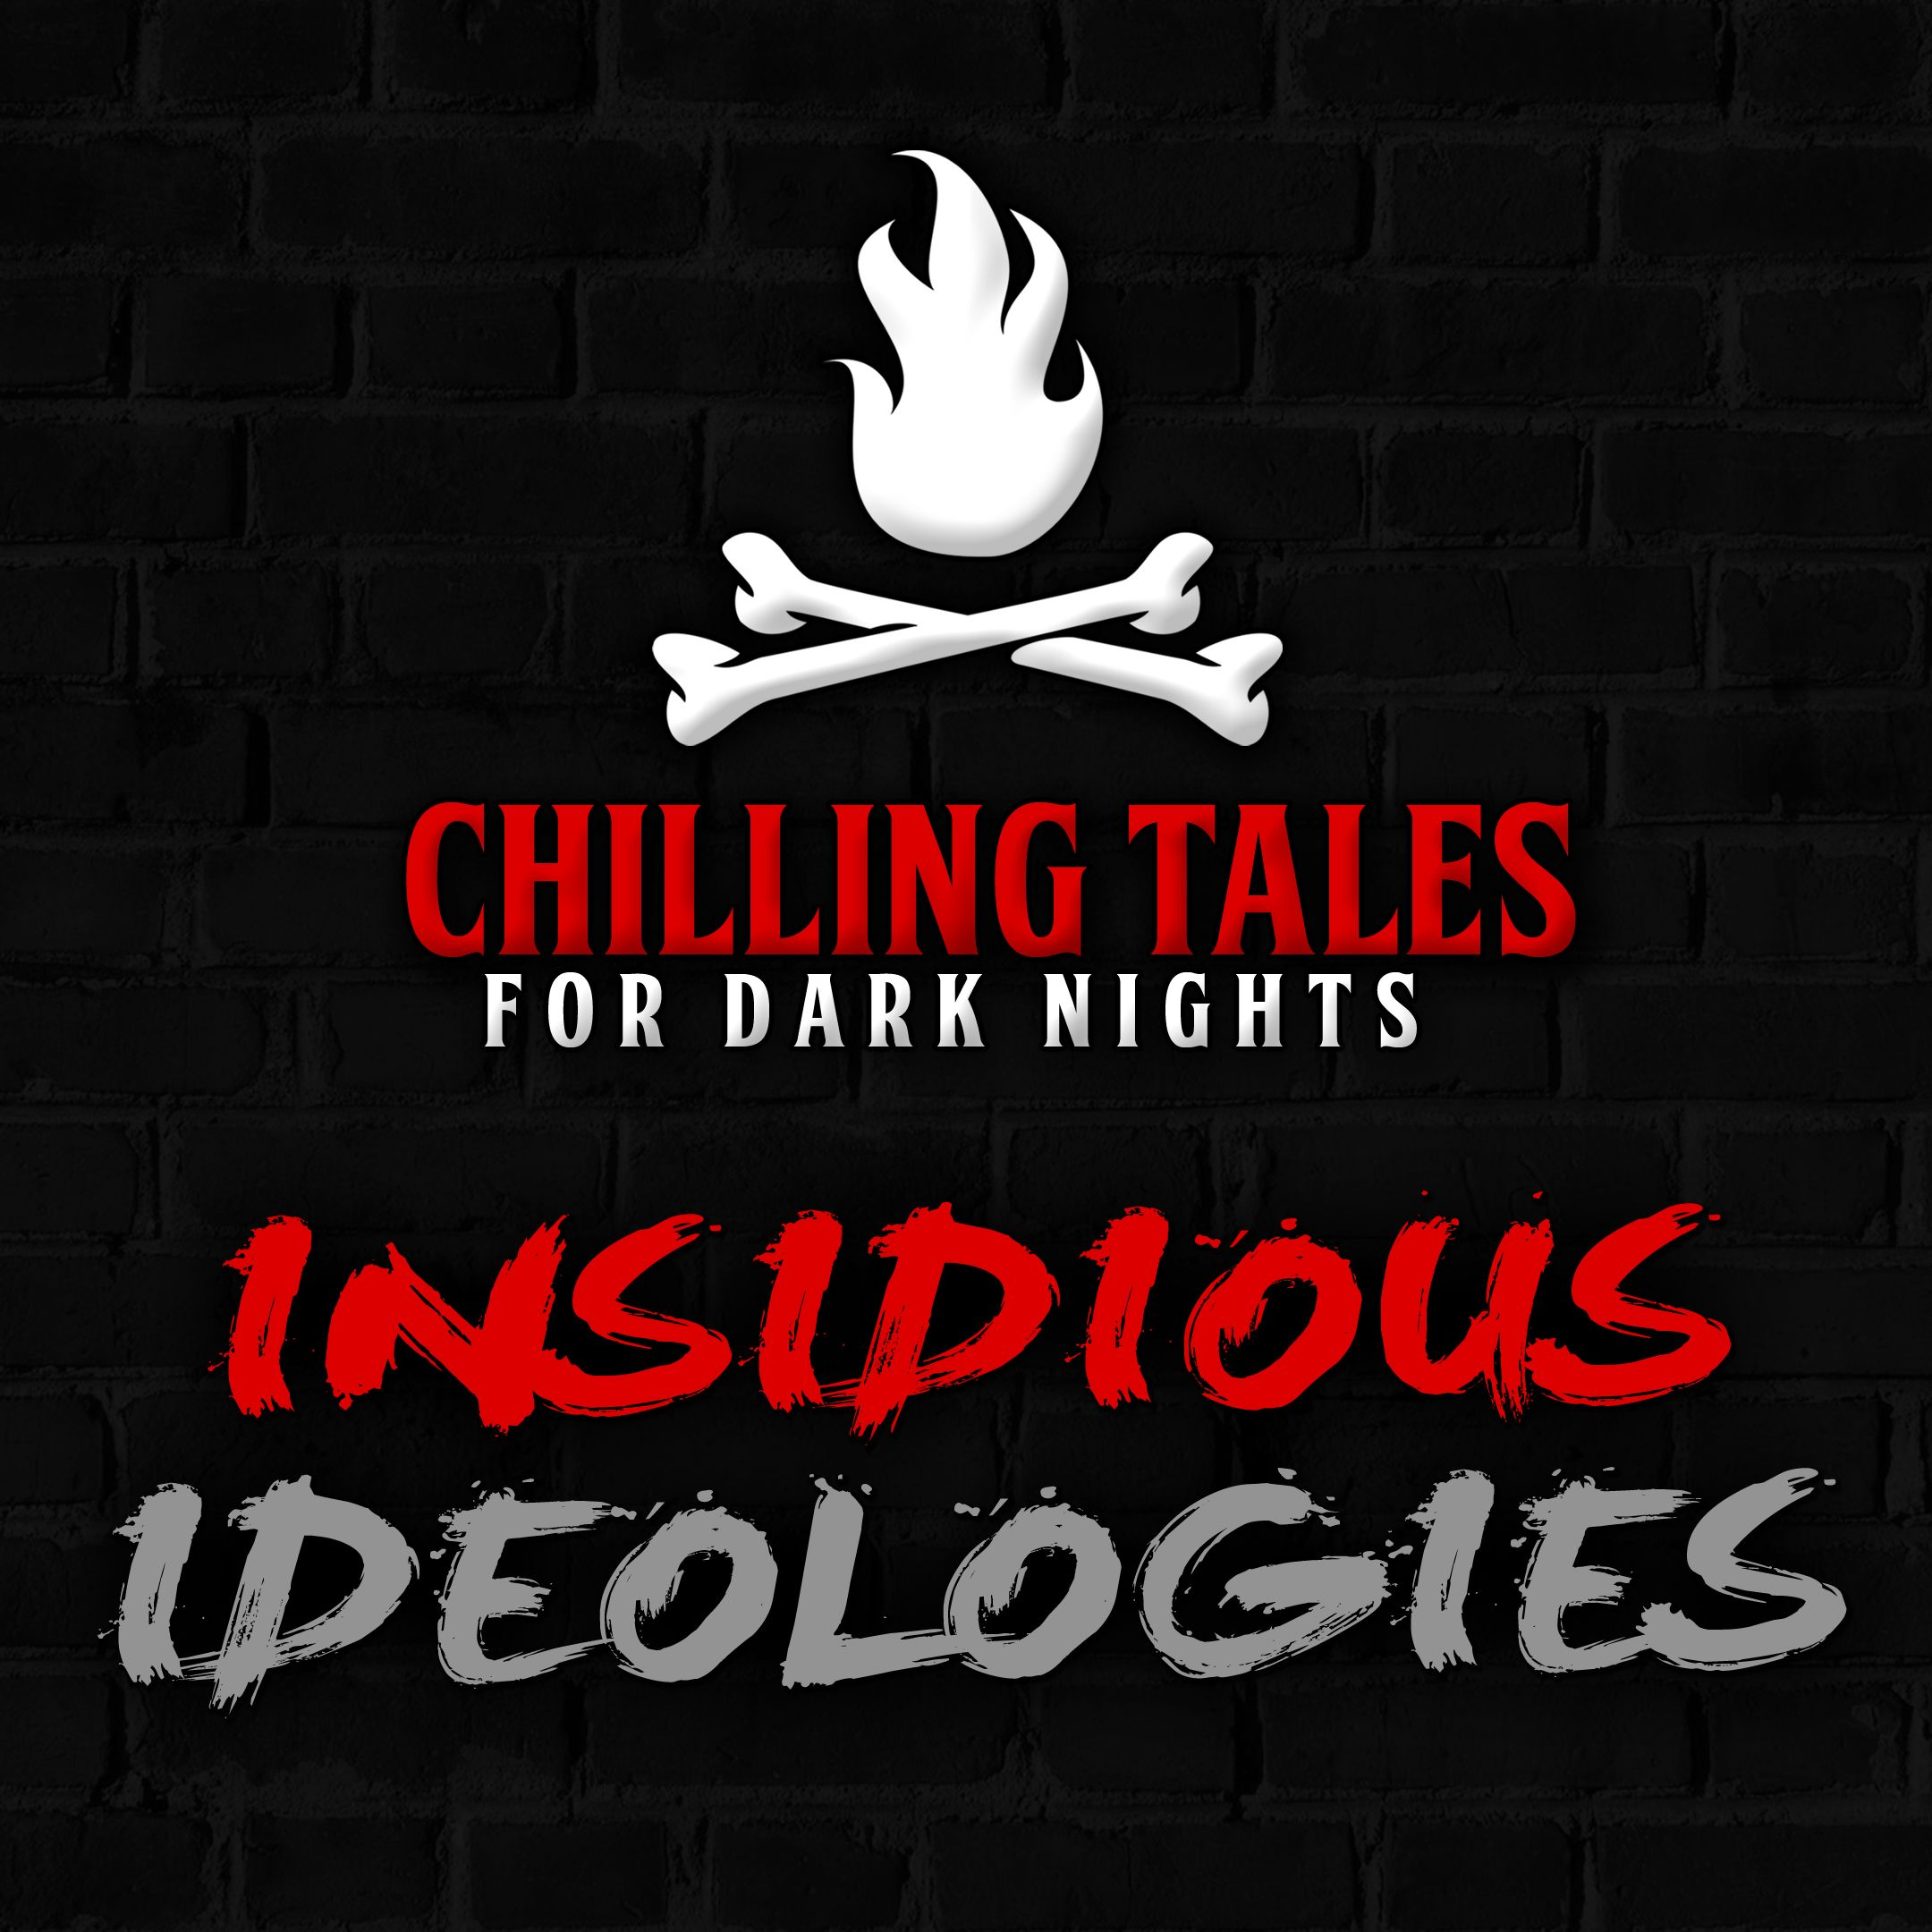 82: Insidious Ideologies – Chilling Tales for Dark Nights